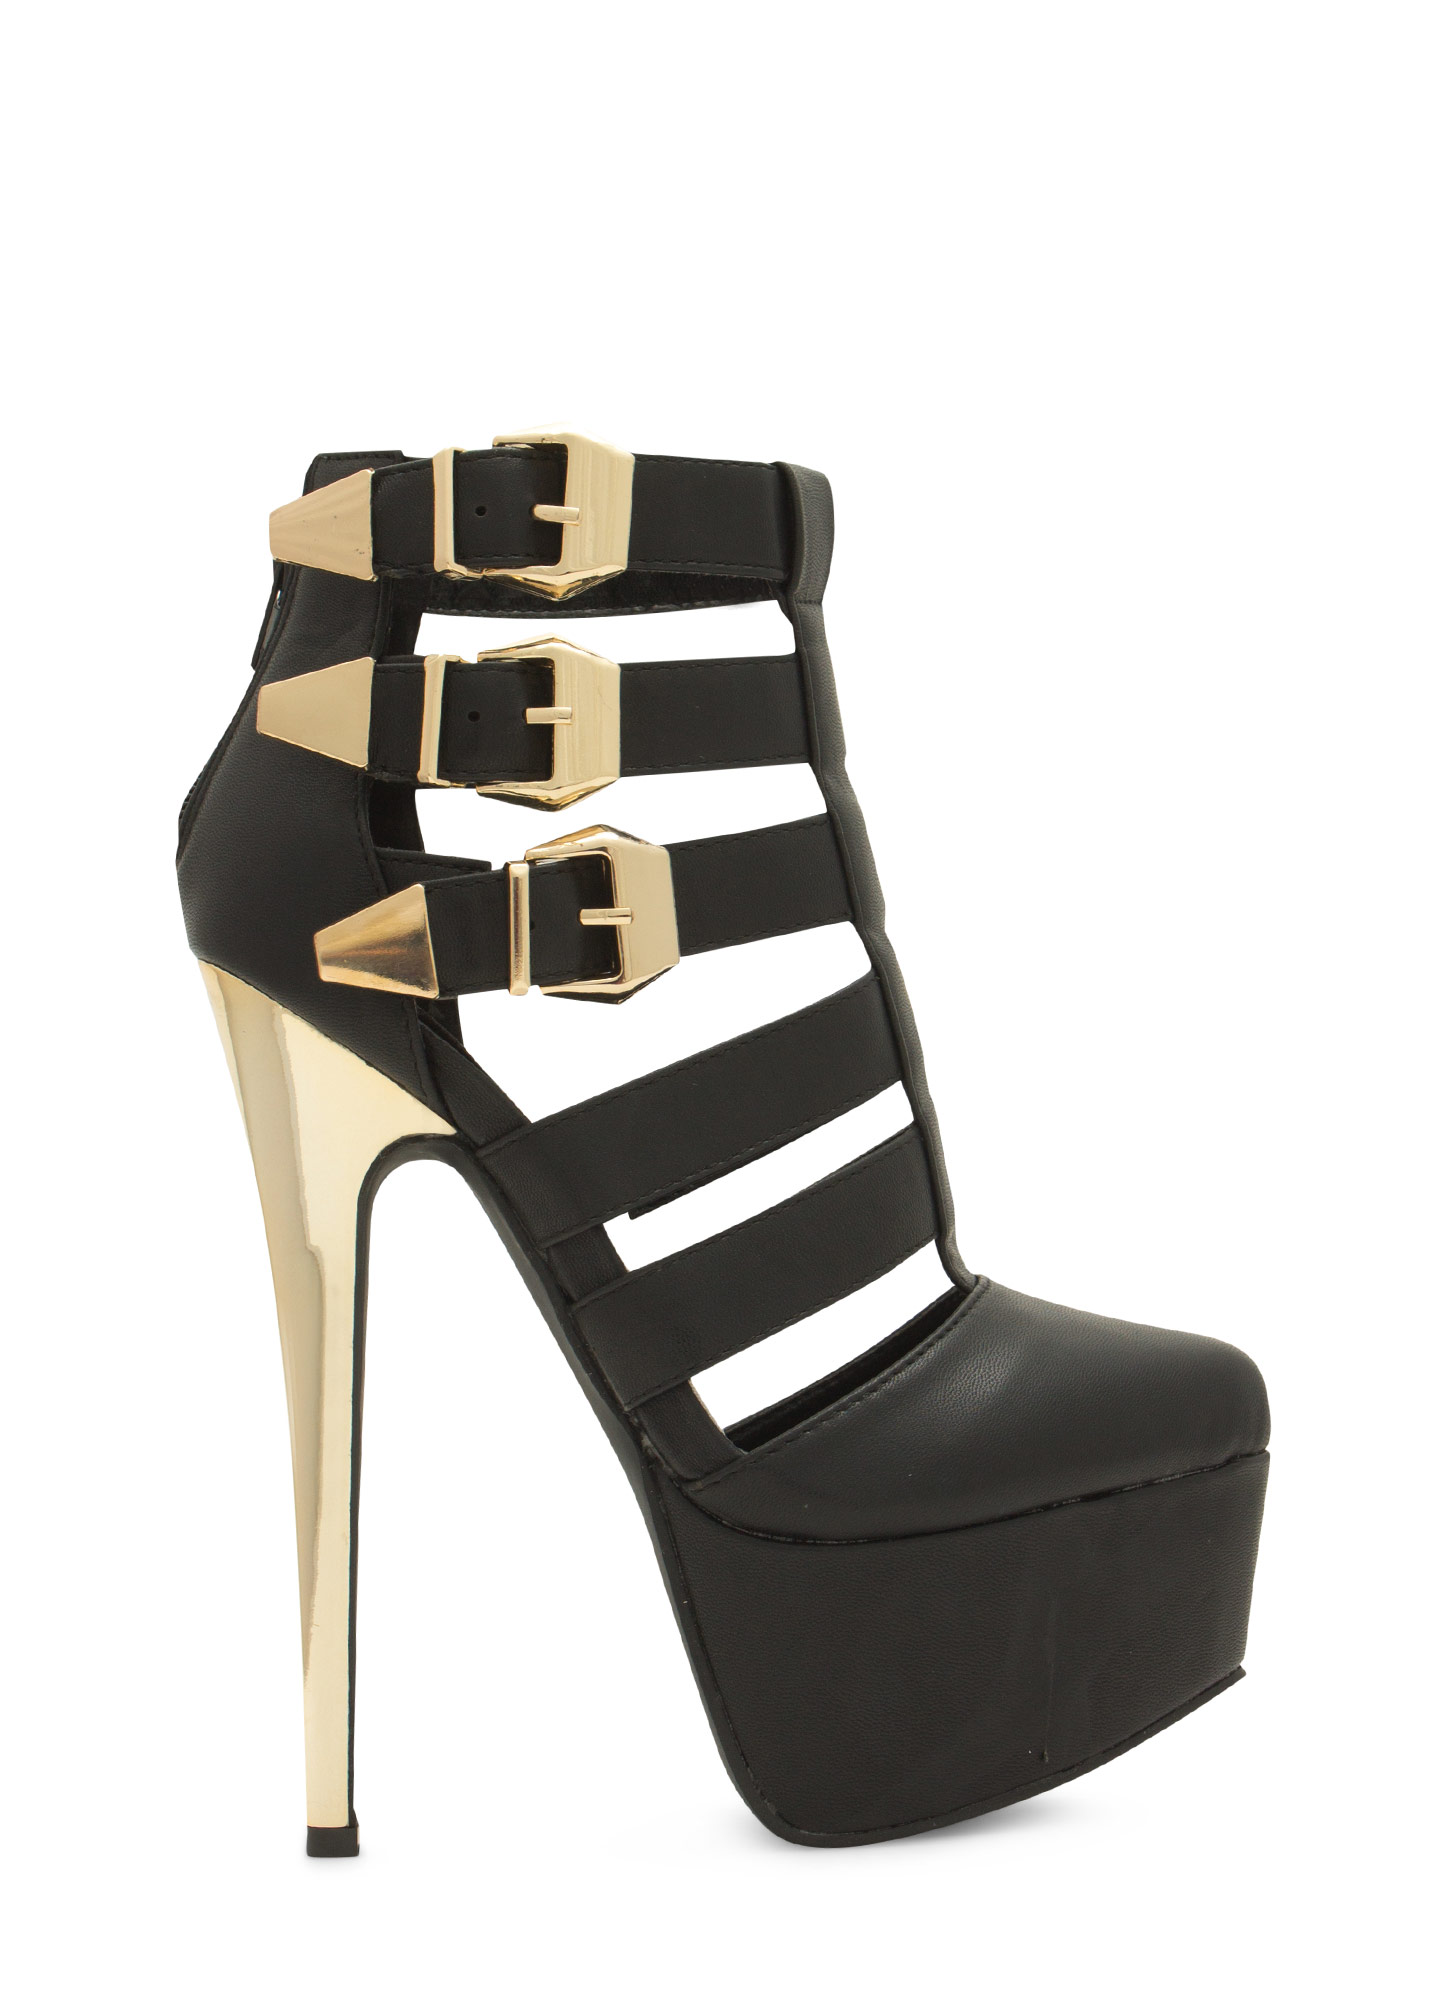 Laddered Tri-Buckle Heels BLACK